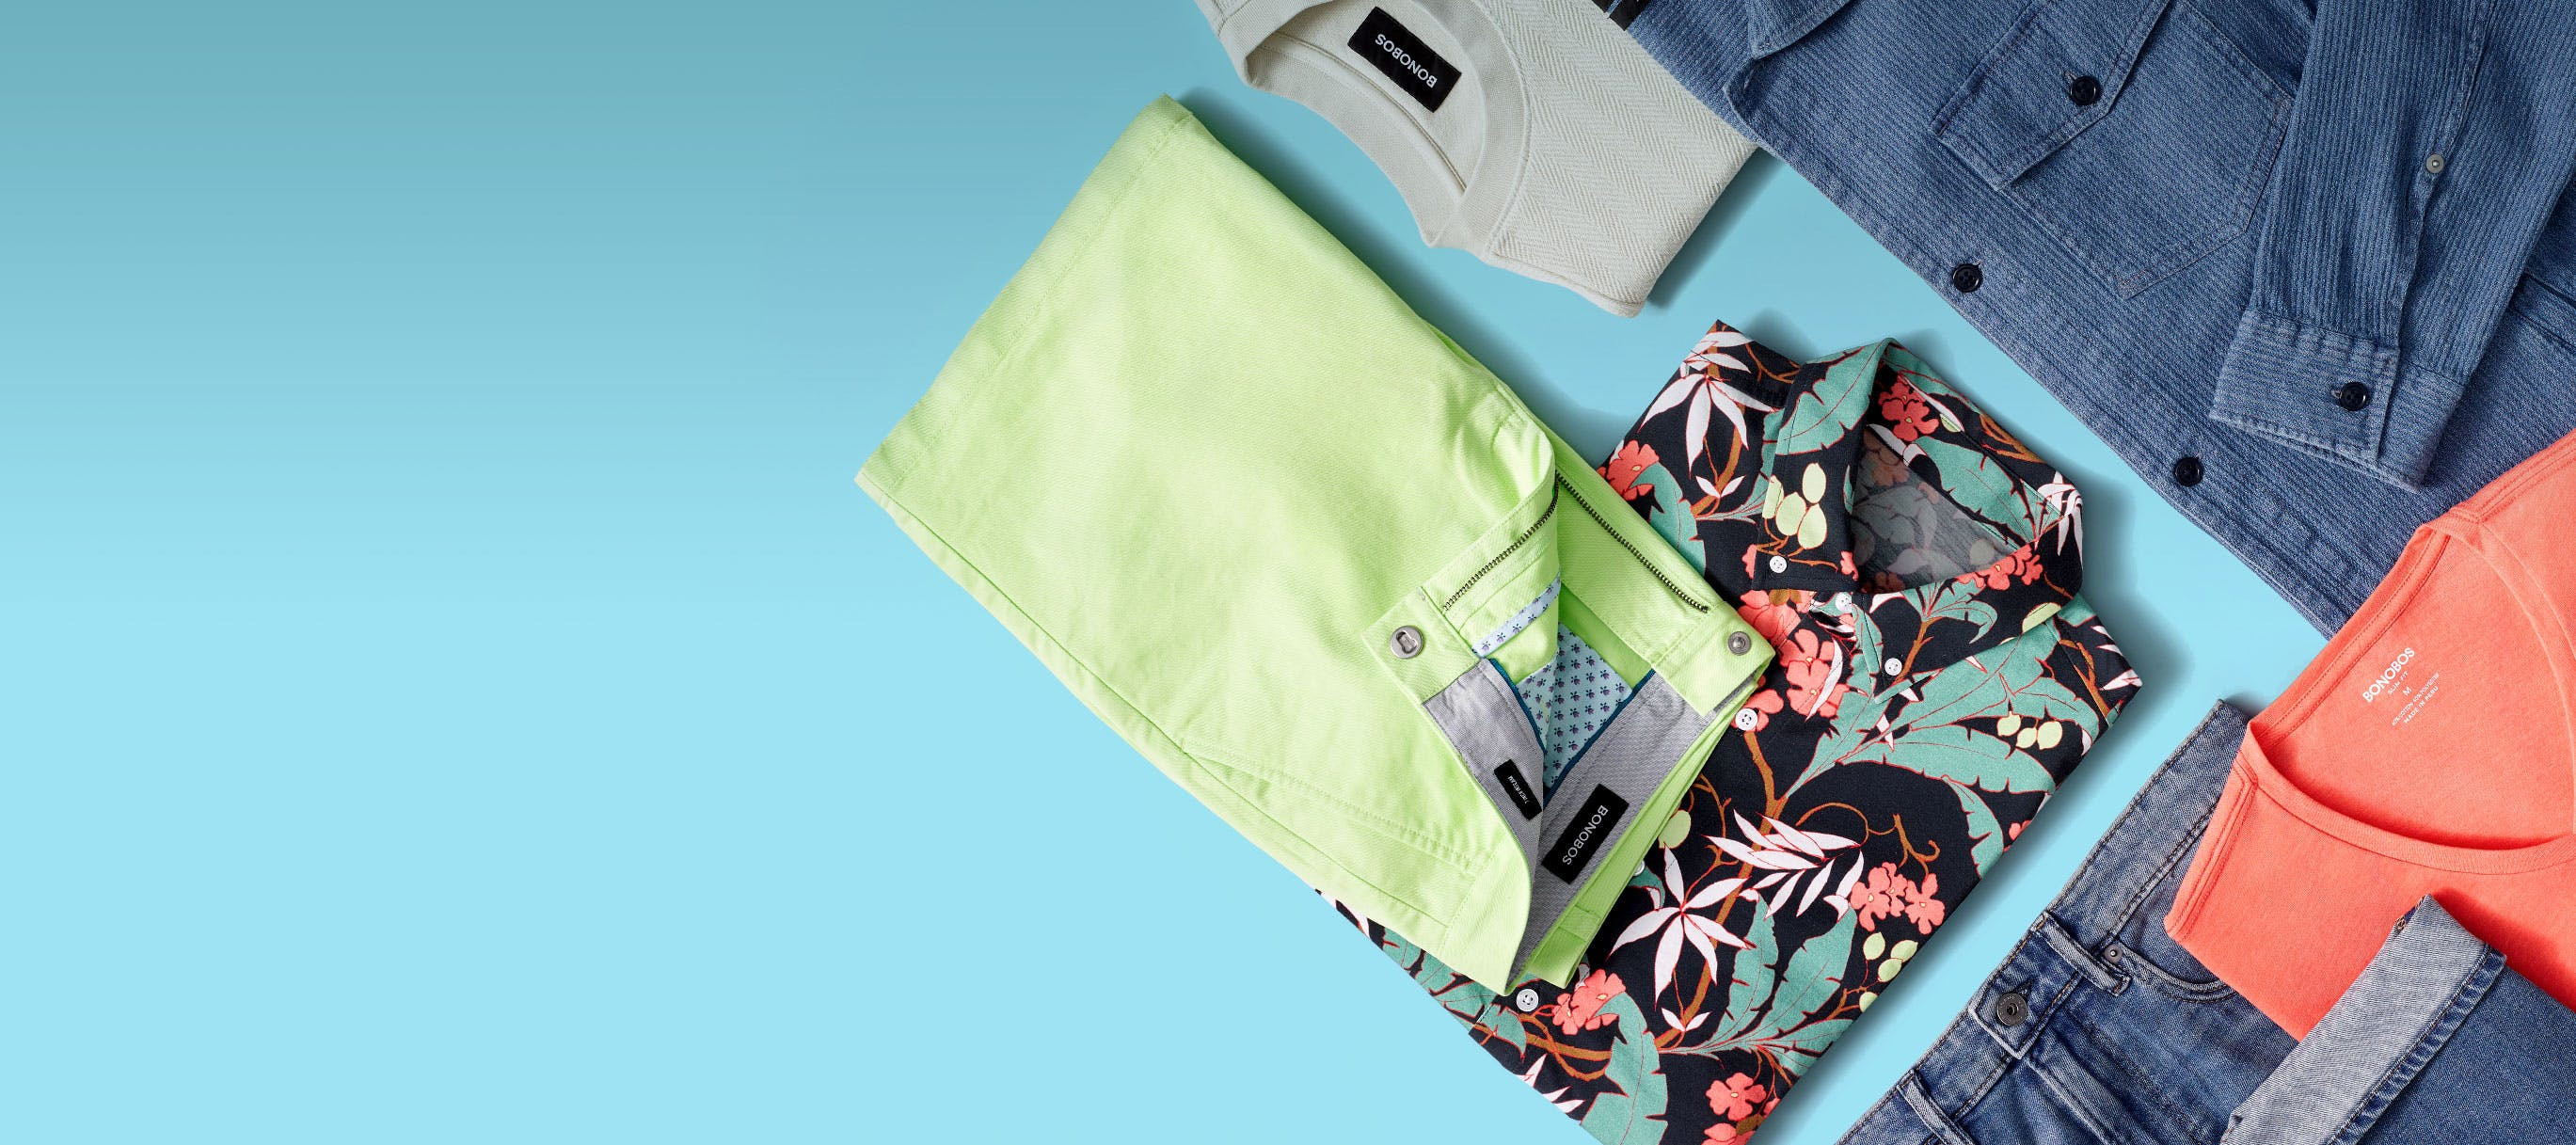 Colorful laydown of clothes on a bright blue background.